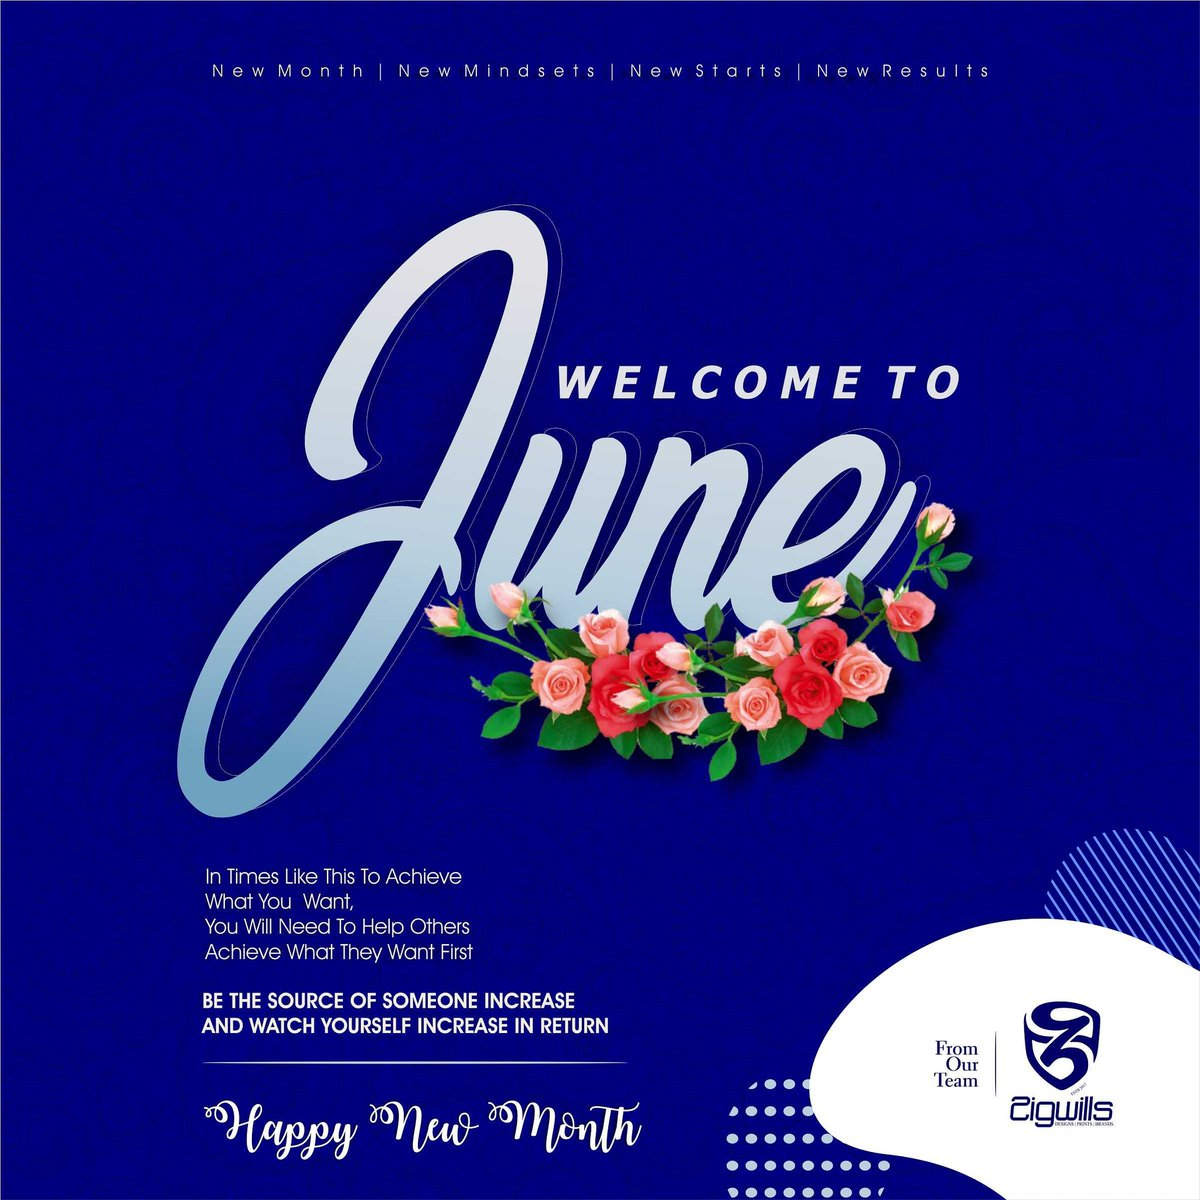 Happy new month from all of us @zigwills_media  We wish you the very best the new month has to offer and grow on very side.  Hello JUNE be awesome!!! #ananymous #happynewmonth #zigwillsmedia #graphicdesign #graphicdesigner #creativity #abujabusiness #abujaconnect #justiceforfloydpic.twitter.com/WXBWIpKfmA